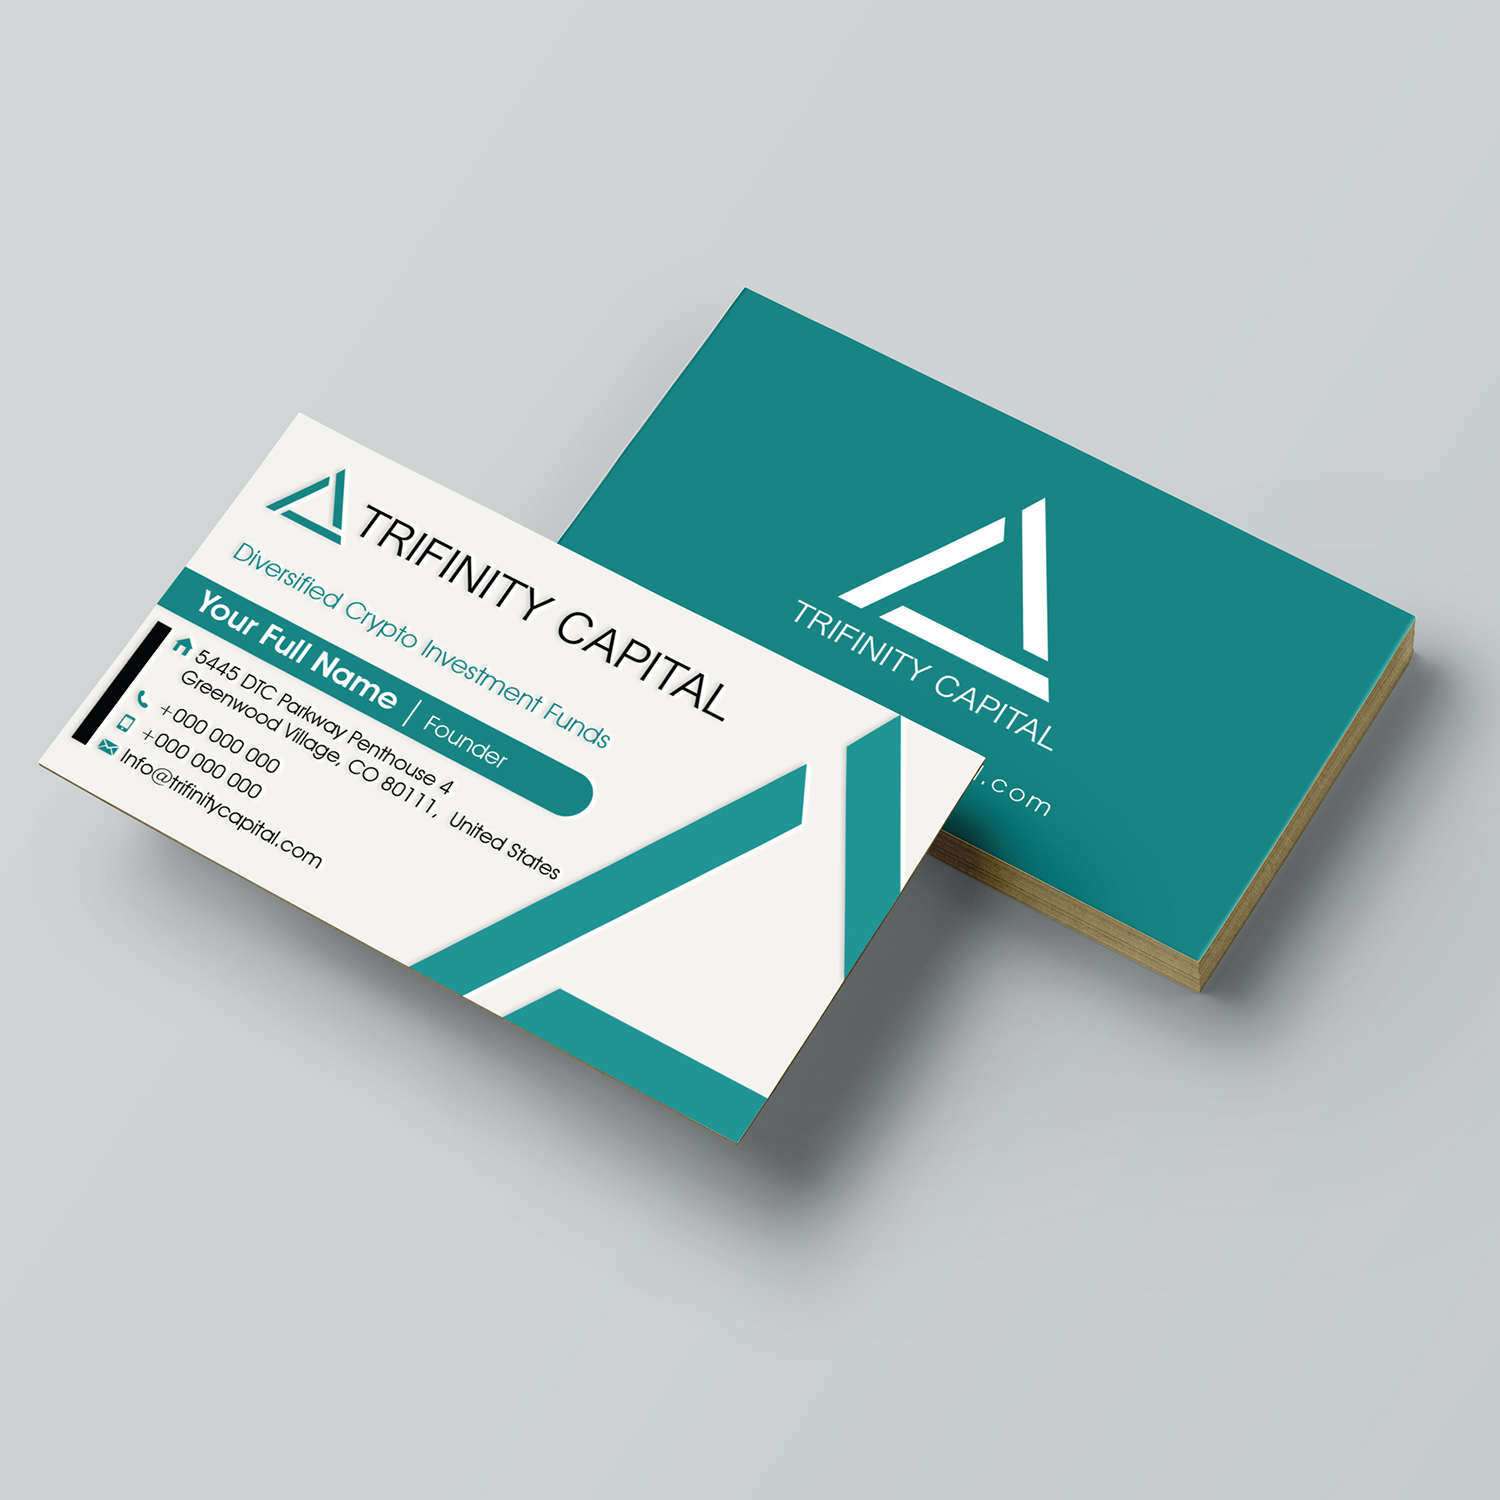 Modern masculine investment business card design for trifinity business card design by gomedia for trifinity capital design 18078359 reheart Image collections